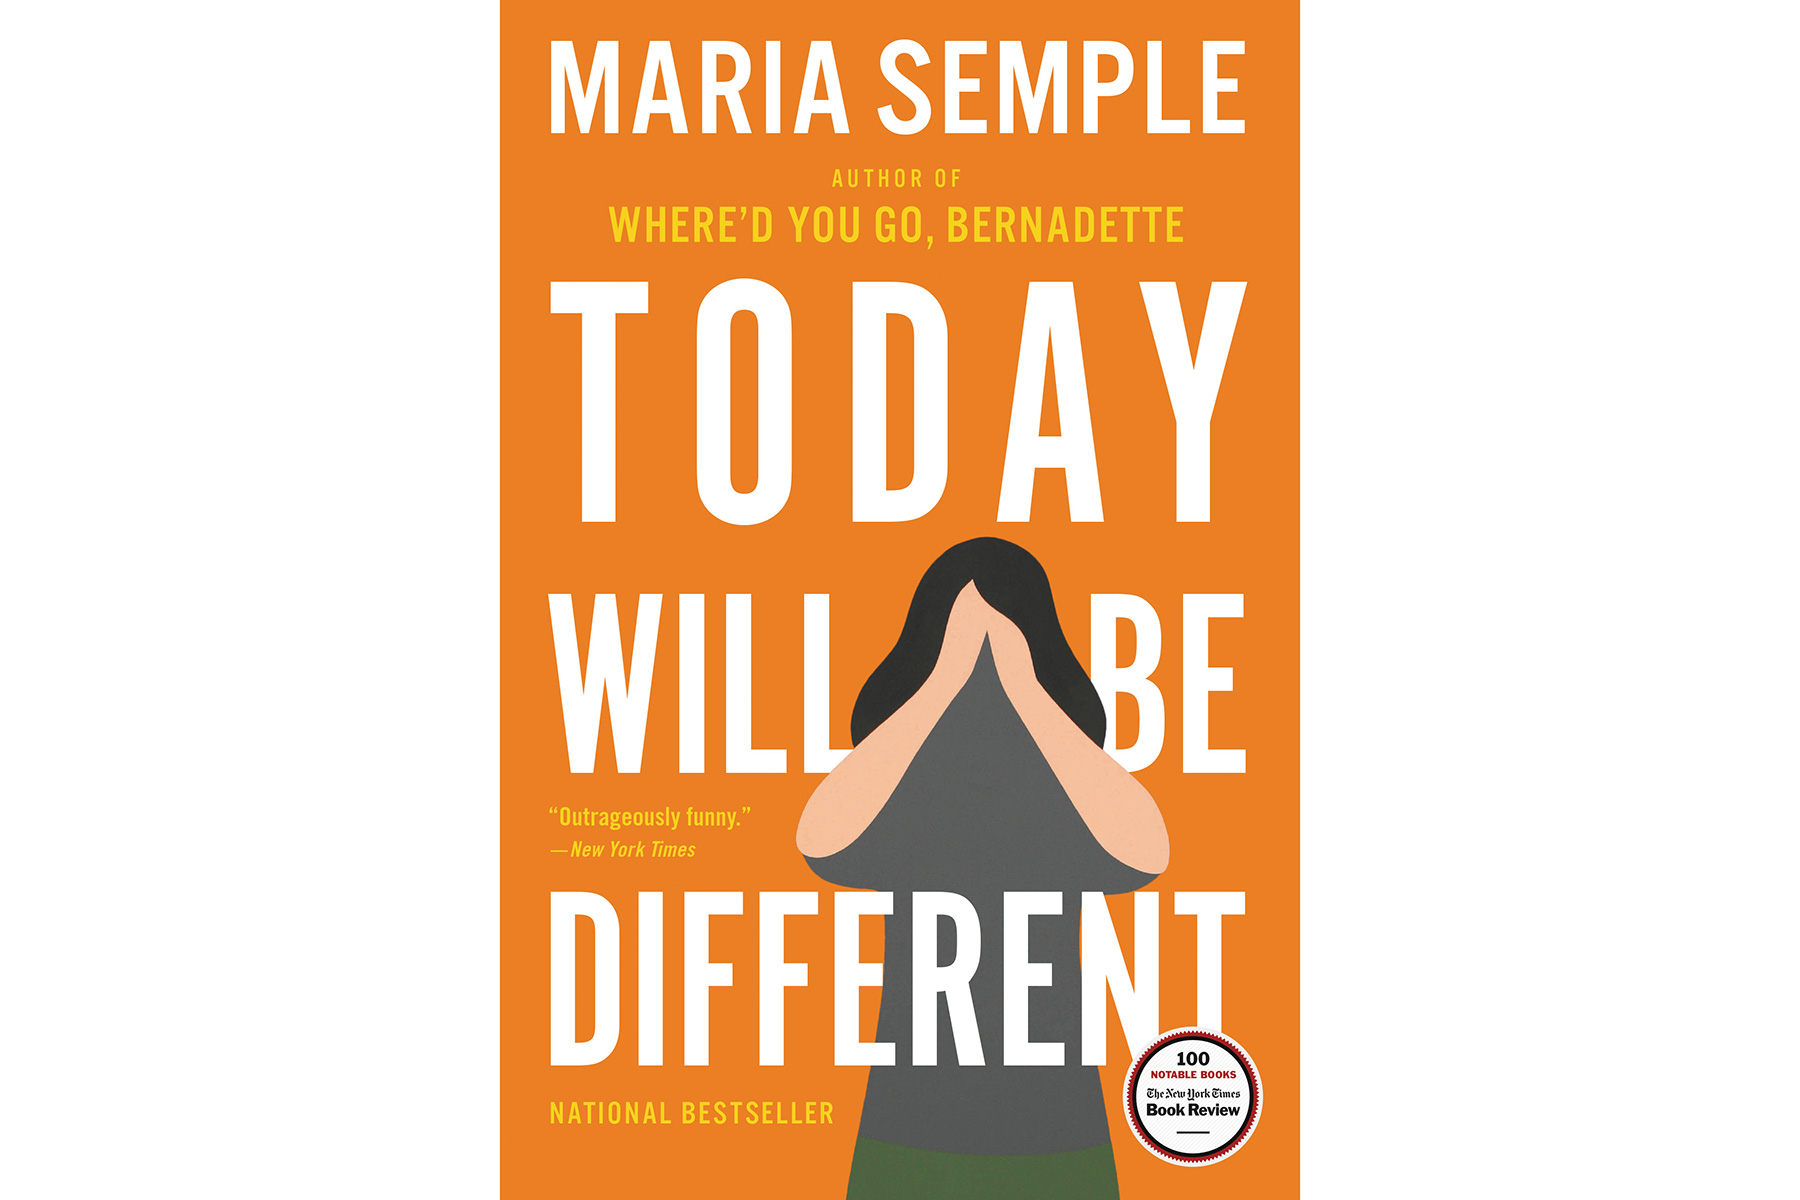 Today Will Be Different, by Maria Semple